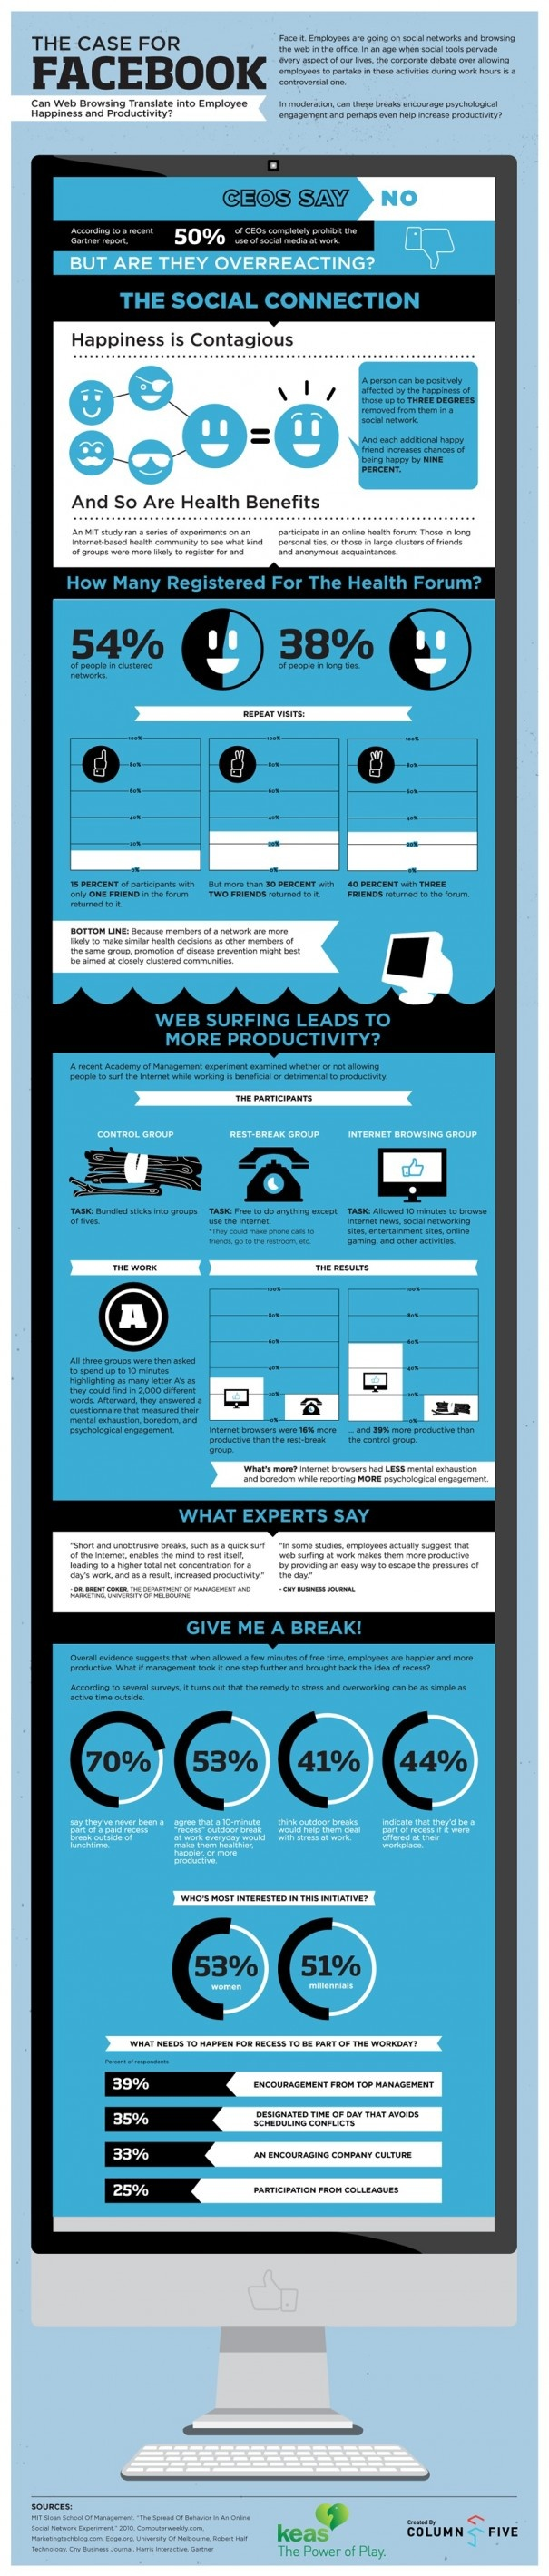 Why company should allow social media during work    love the graphic go here for more info  www.alturl.com/mavut